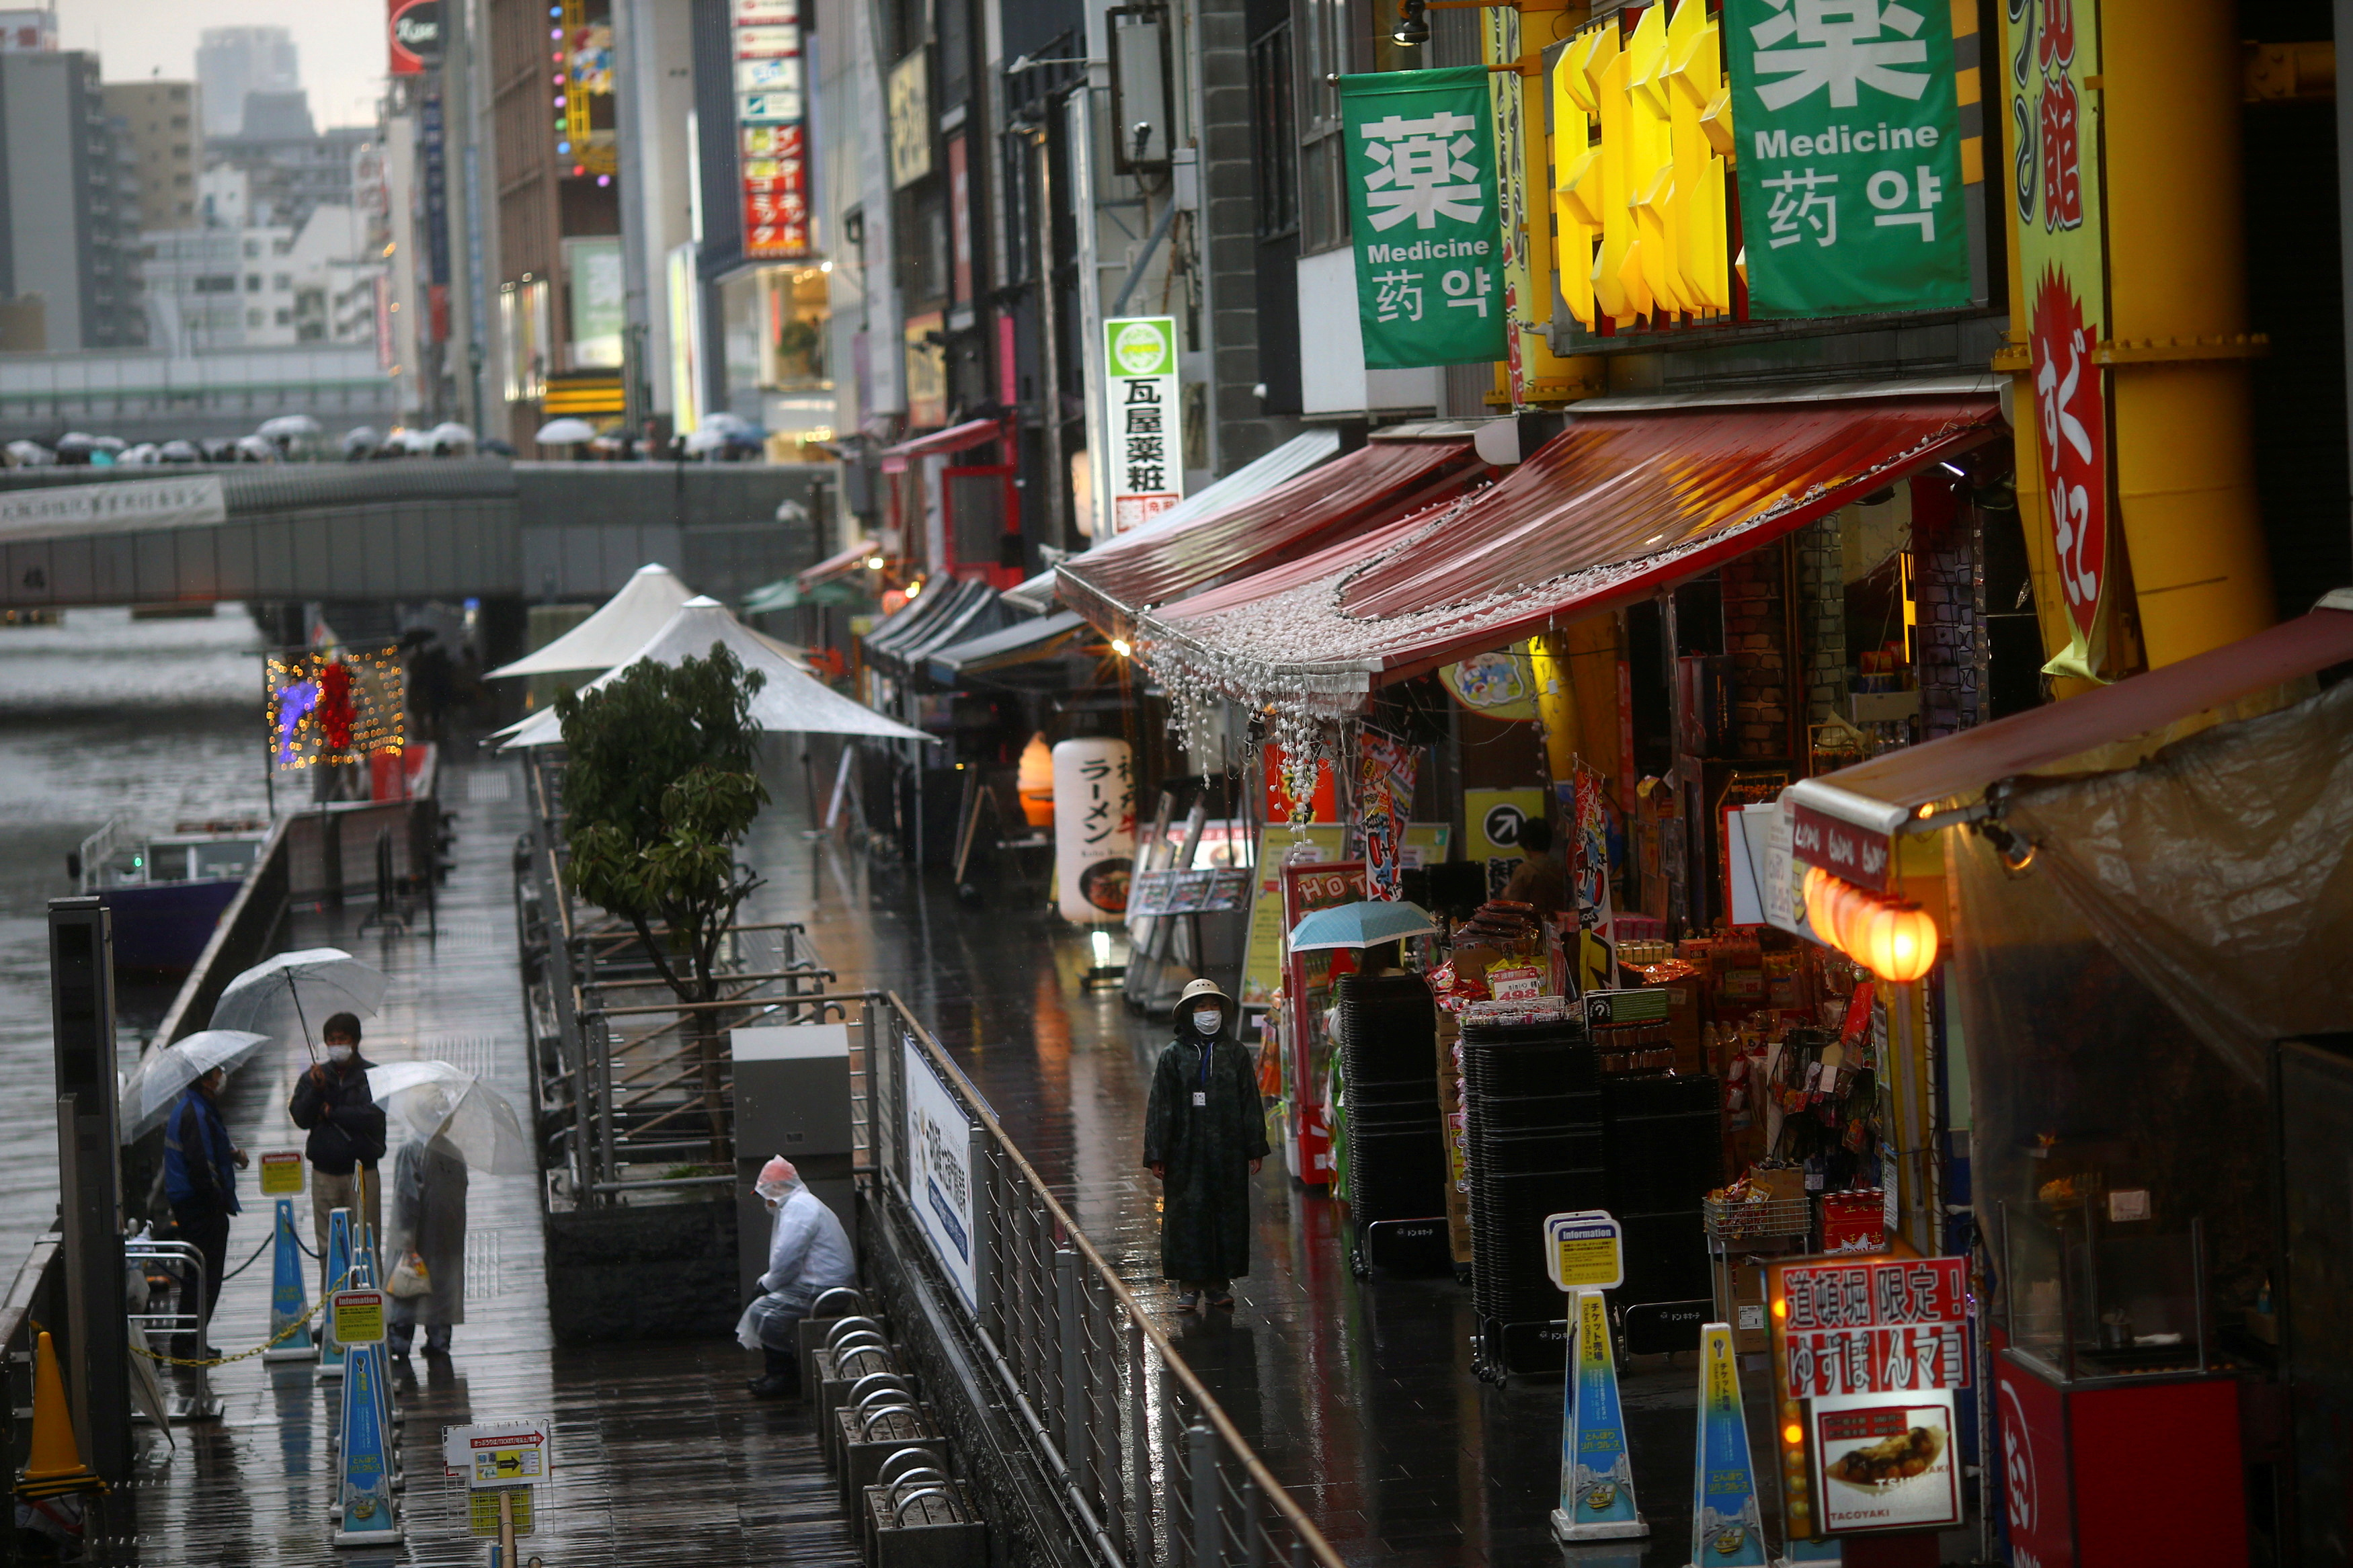 A woman, wearing protective mask following an outbreak of the coronavirus disease (COVID-19), walks on an almost empty street in the Dotonbori entertainment district of Osaka, Japan, March 14, 2020. Pictured taken March 14, 2020. REUTERS/Edgard Garrido/File Photo